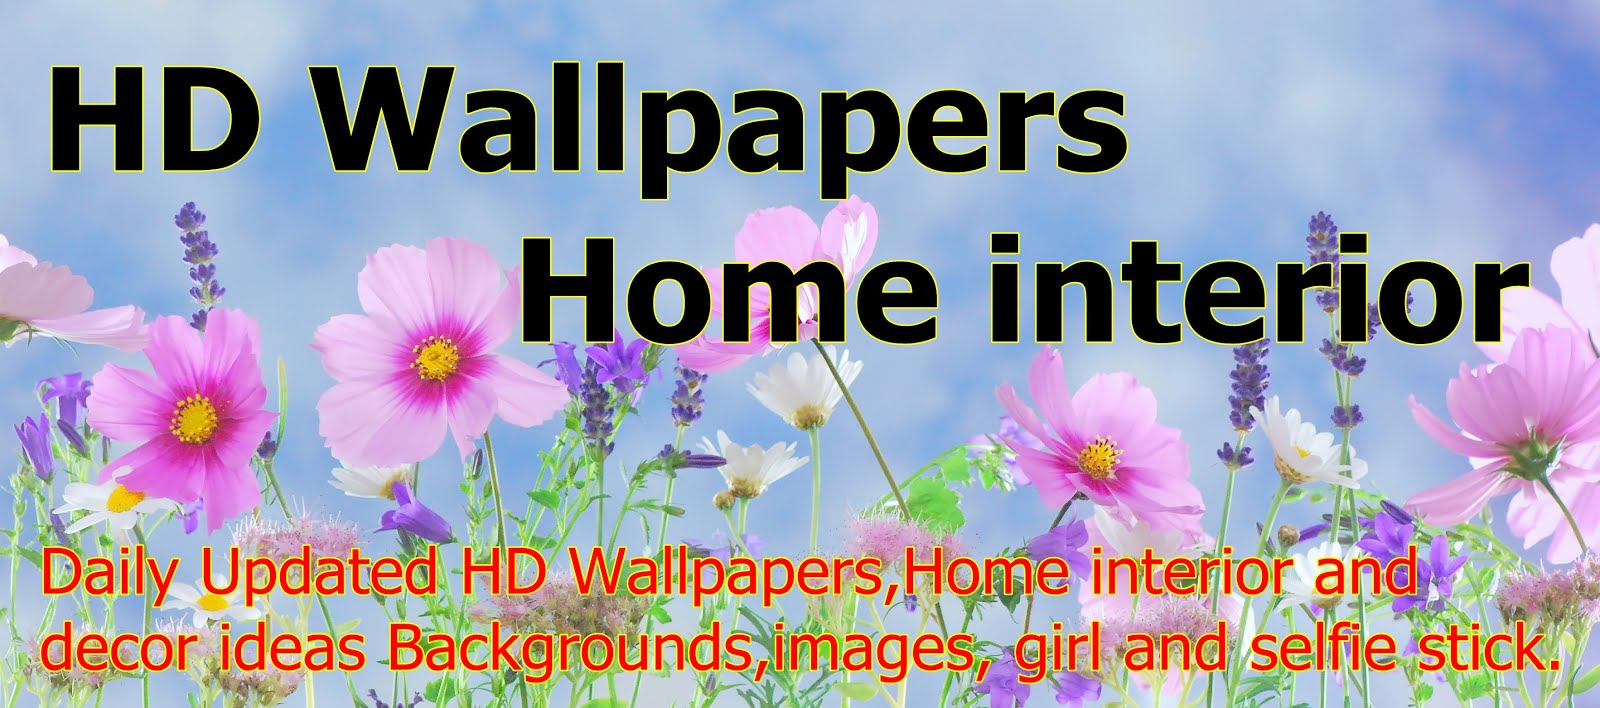 HD Wallpapers & Home interior